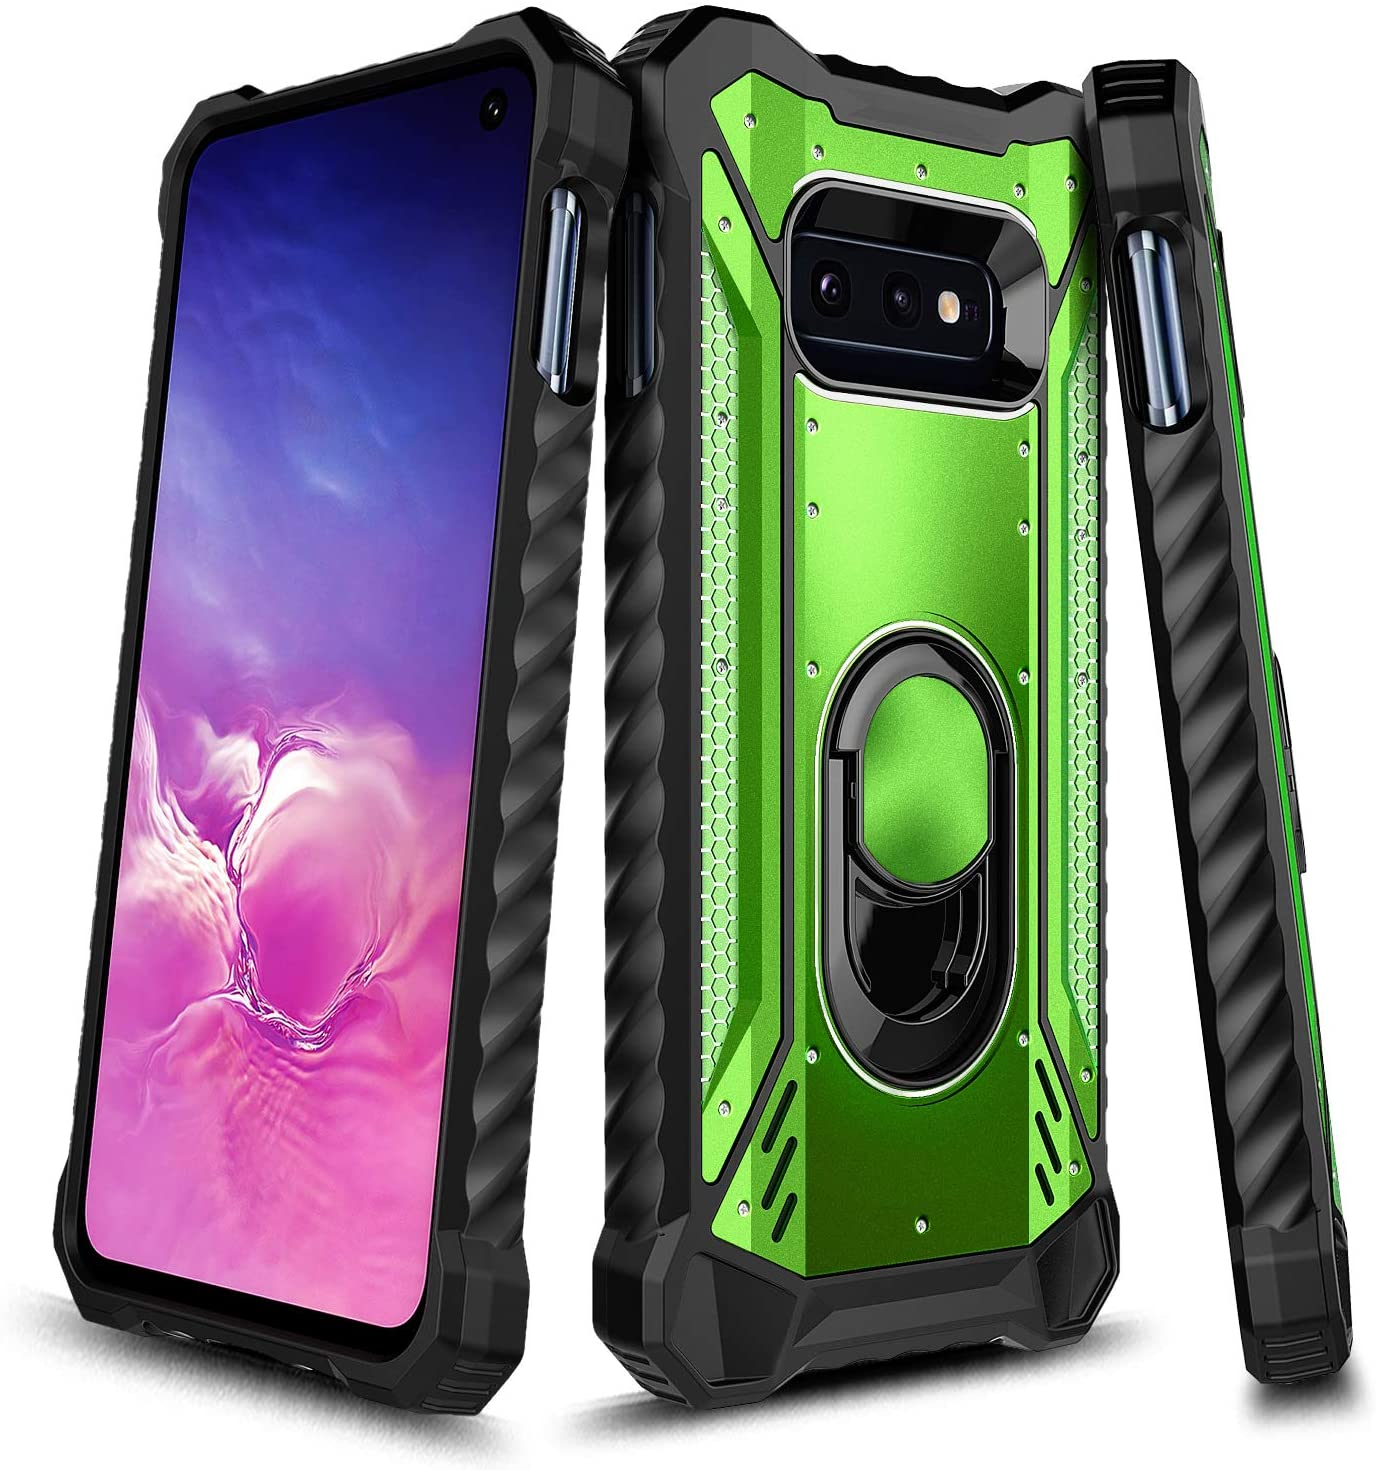 E-Began Galaxy S10 Plus Case, Aluminum Metal Built-in Magnetic Ring Holder Stand, Full-Body Protective Shockproof Military Phone Case for Samsung Galaxy S10+ Plus (Green)